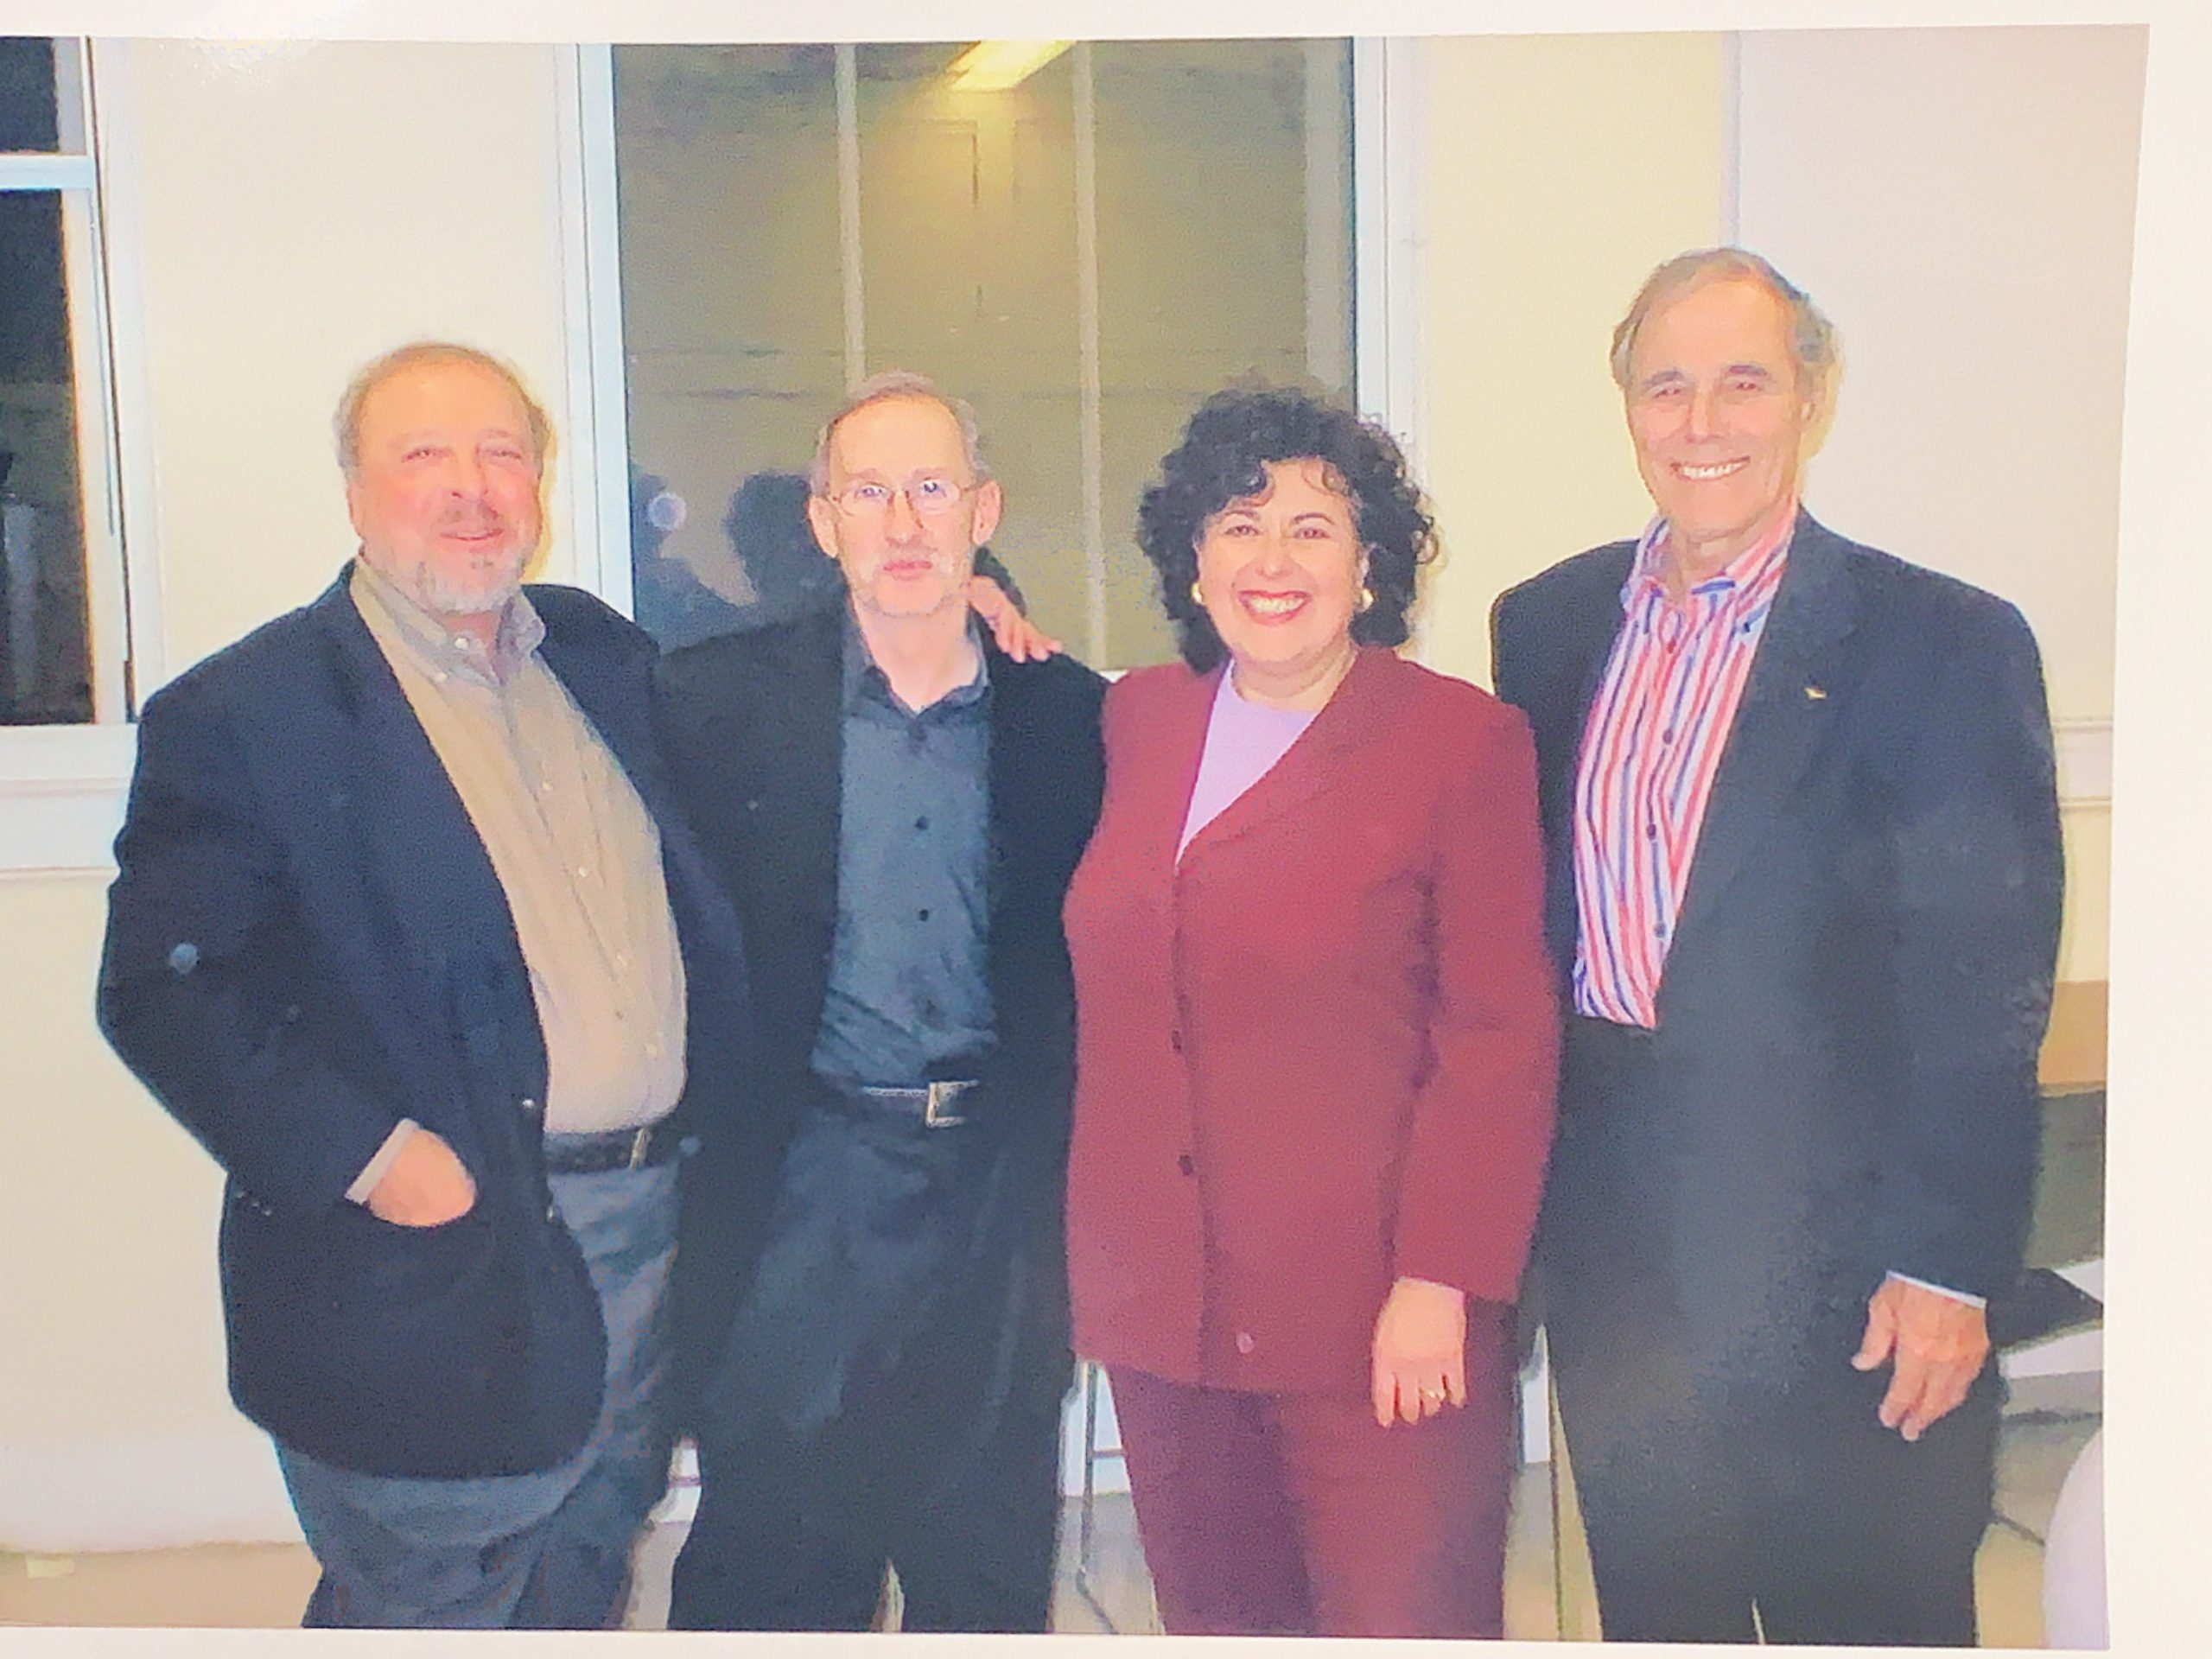 """Nelson DeMille, Susan Isaacs and Donald Everett Axin with Larry Davidson at the Landmark in Port Washington for """"Conversation from Main Street"""""""